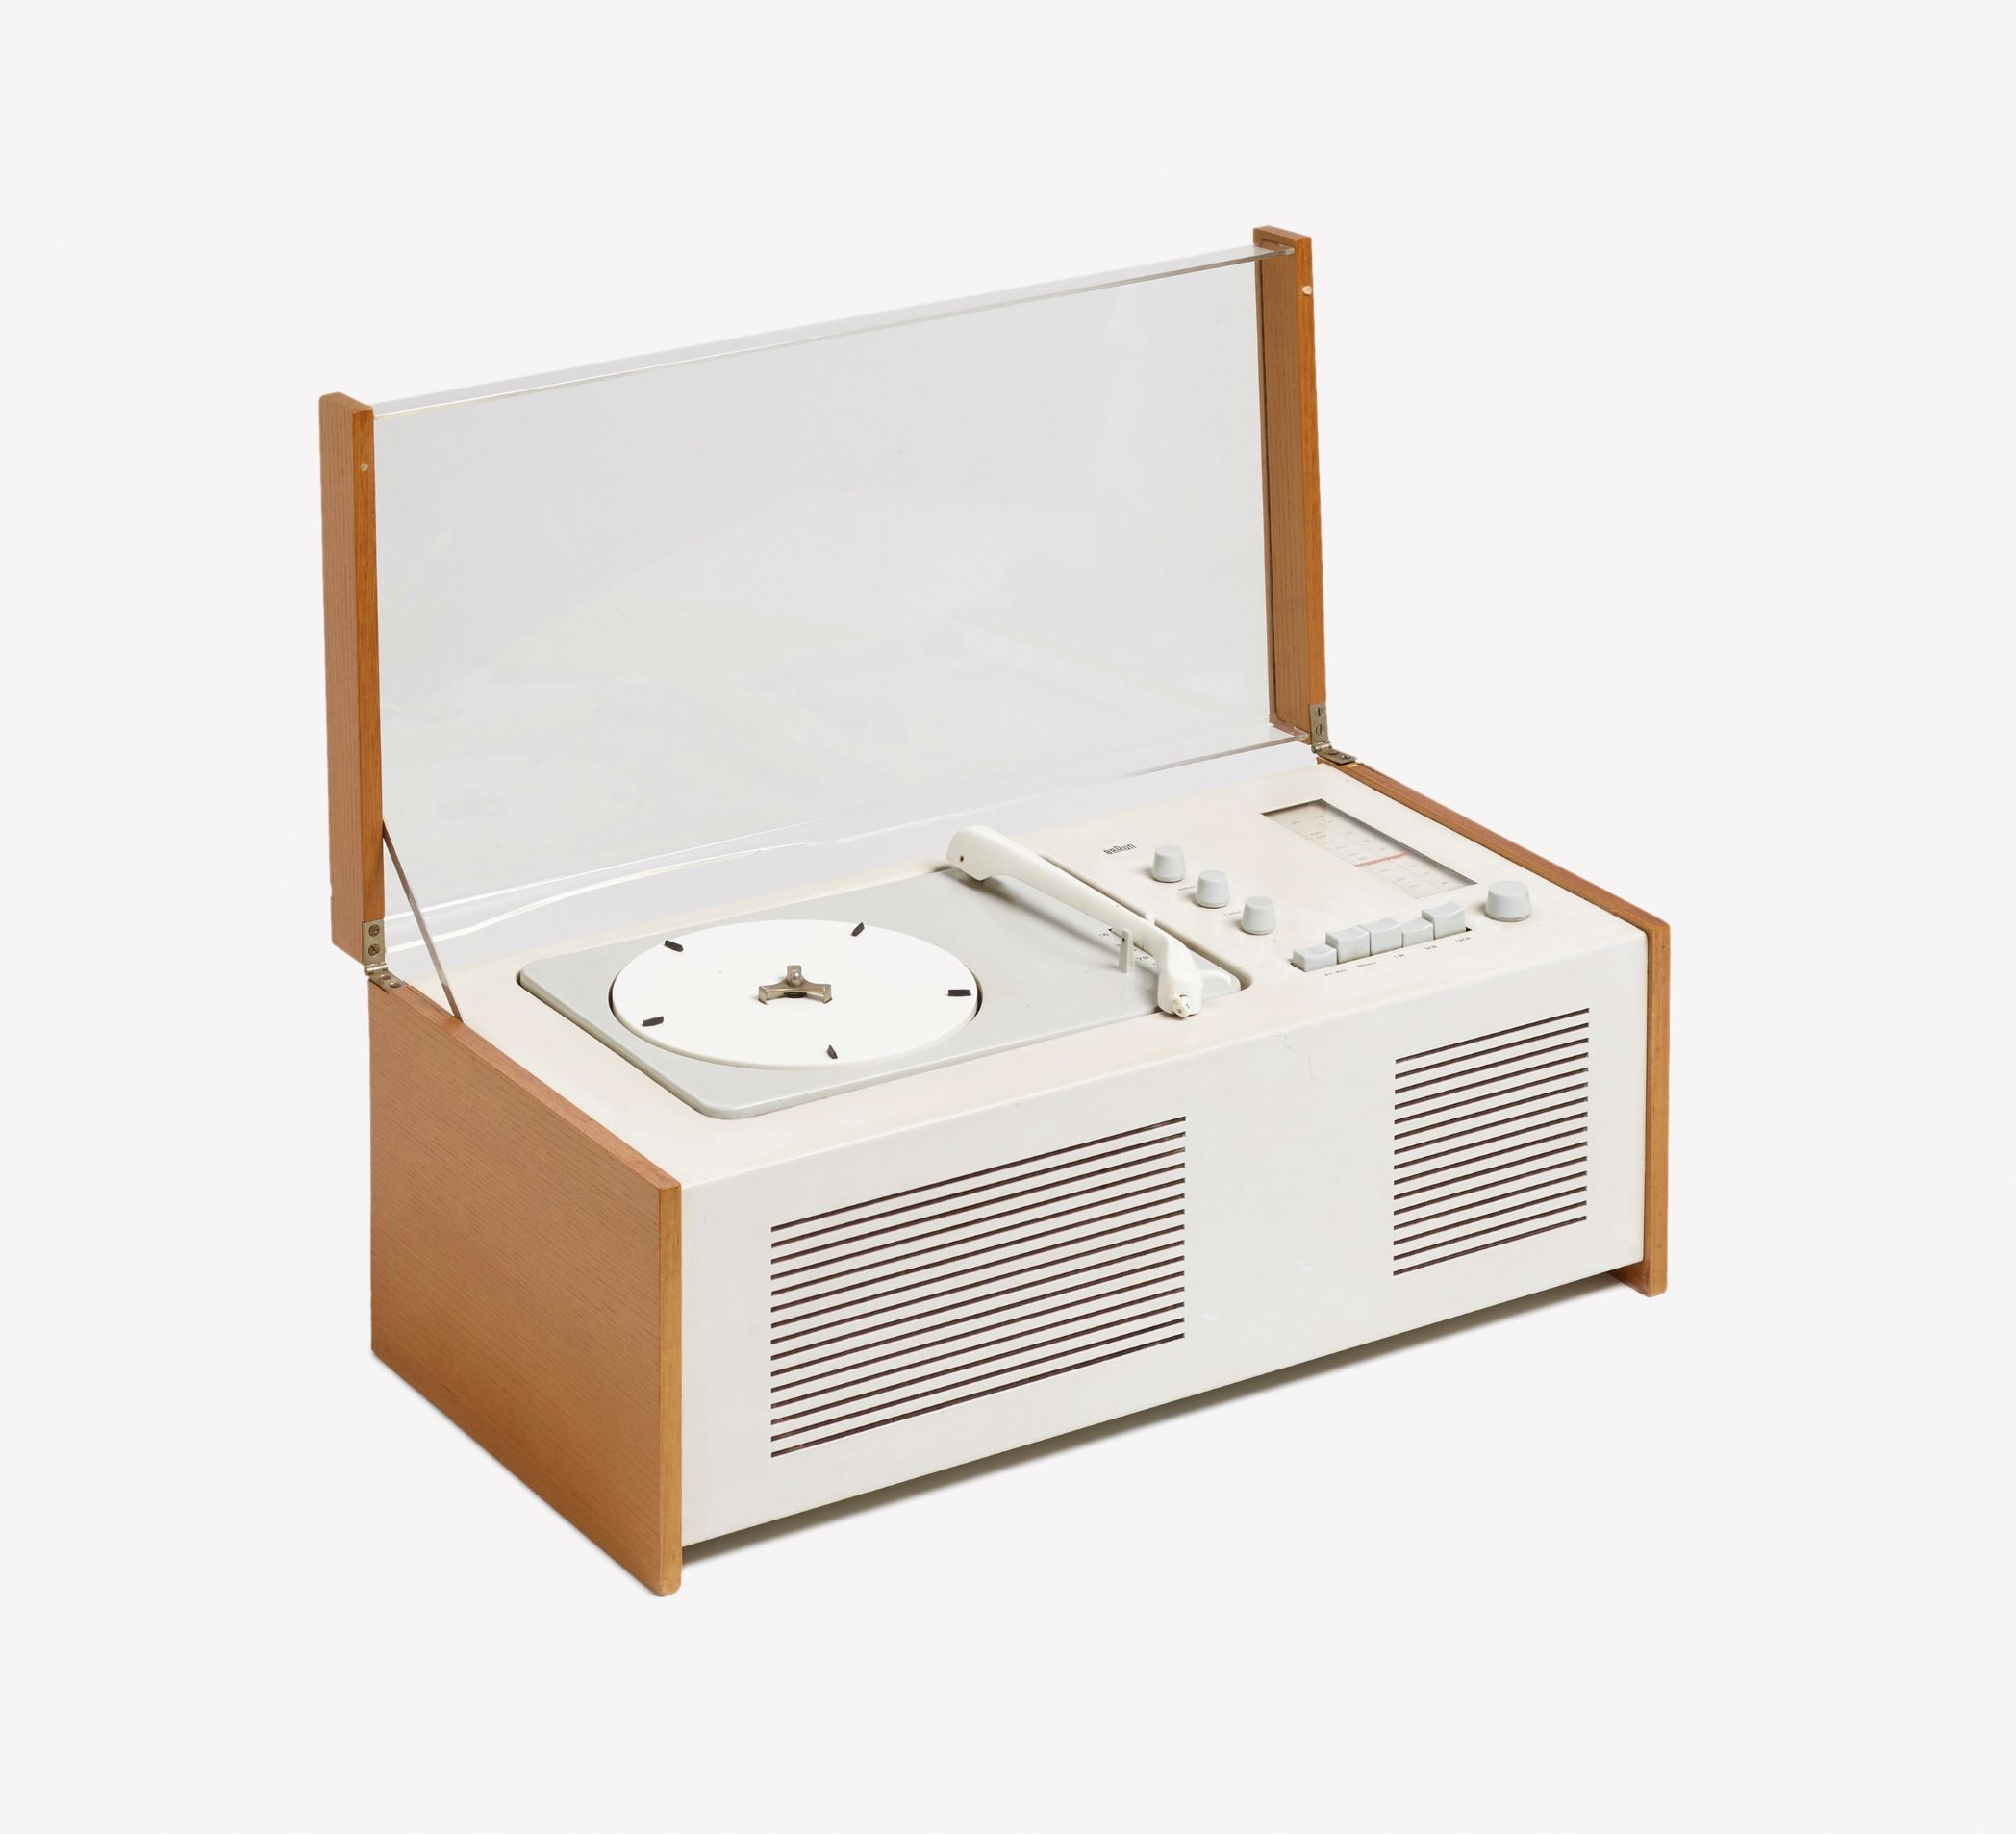 SK 5 Phonosuper Radio and Turntable, Dieter Rams and Hans Gugelot, Braun, 1958